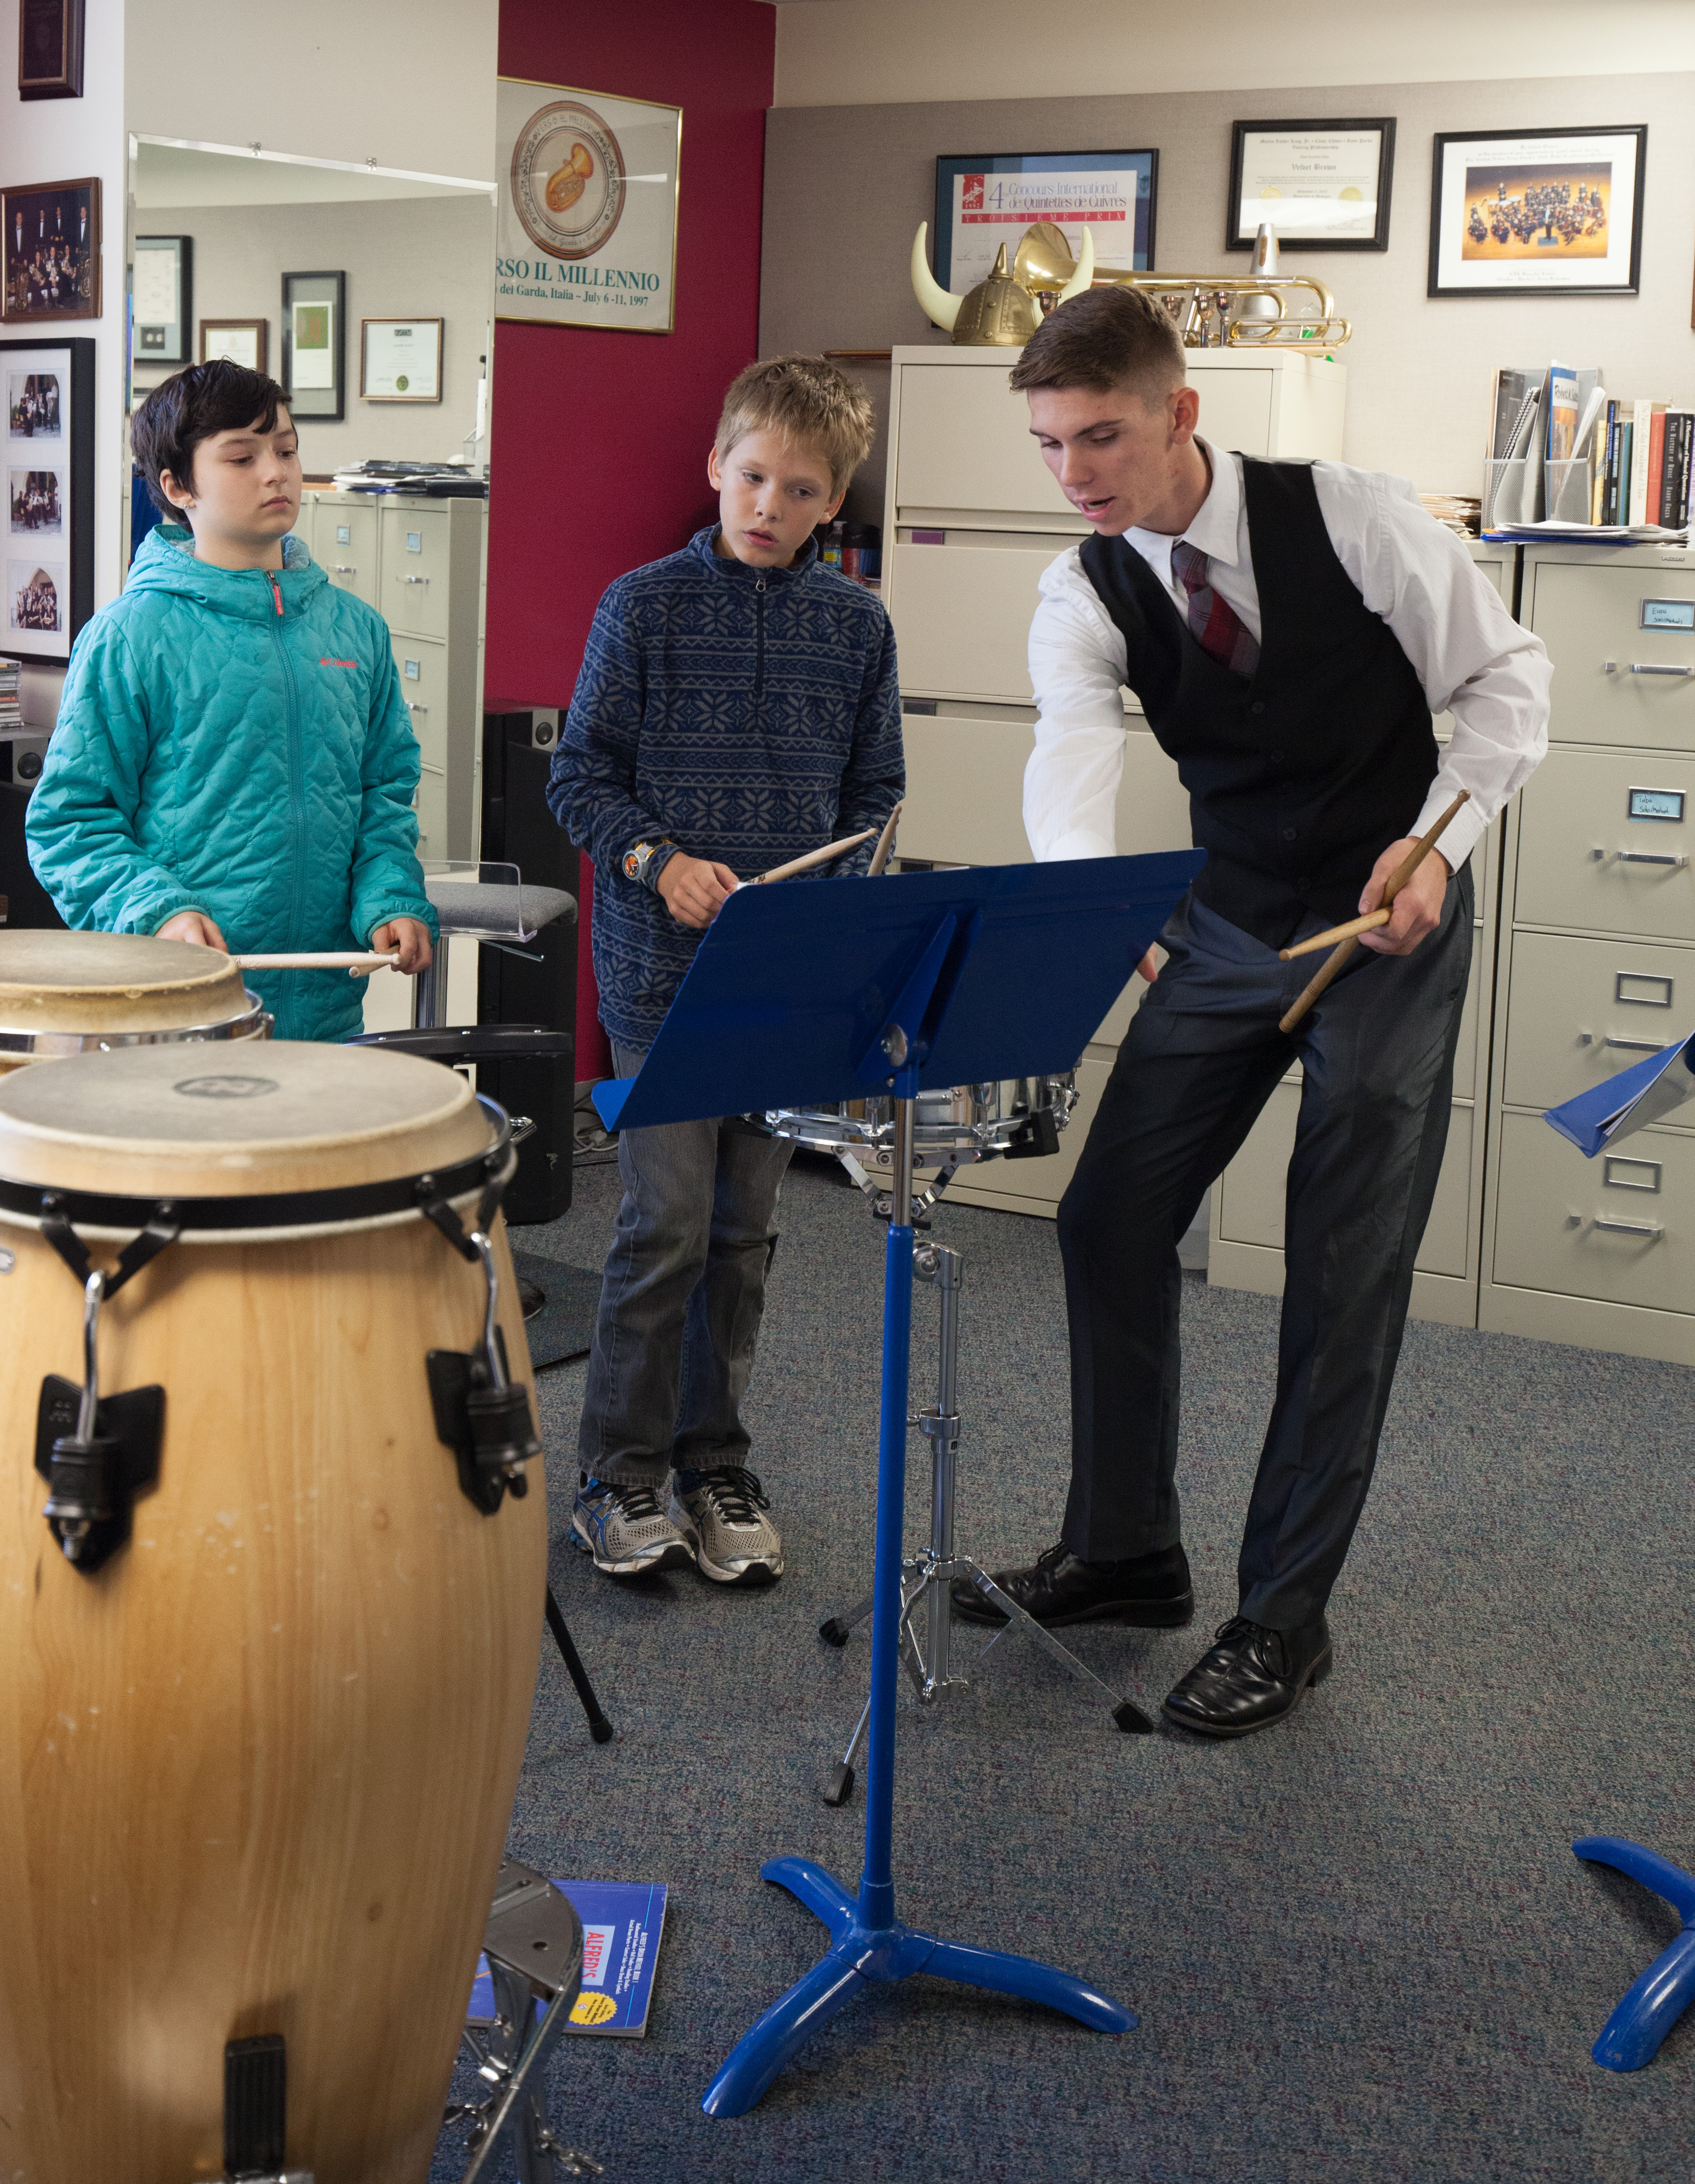 Penn state percussionist teaches 5th graders